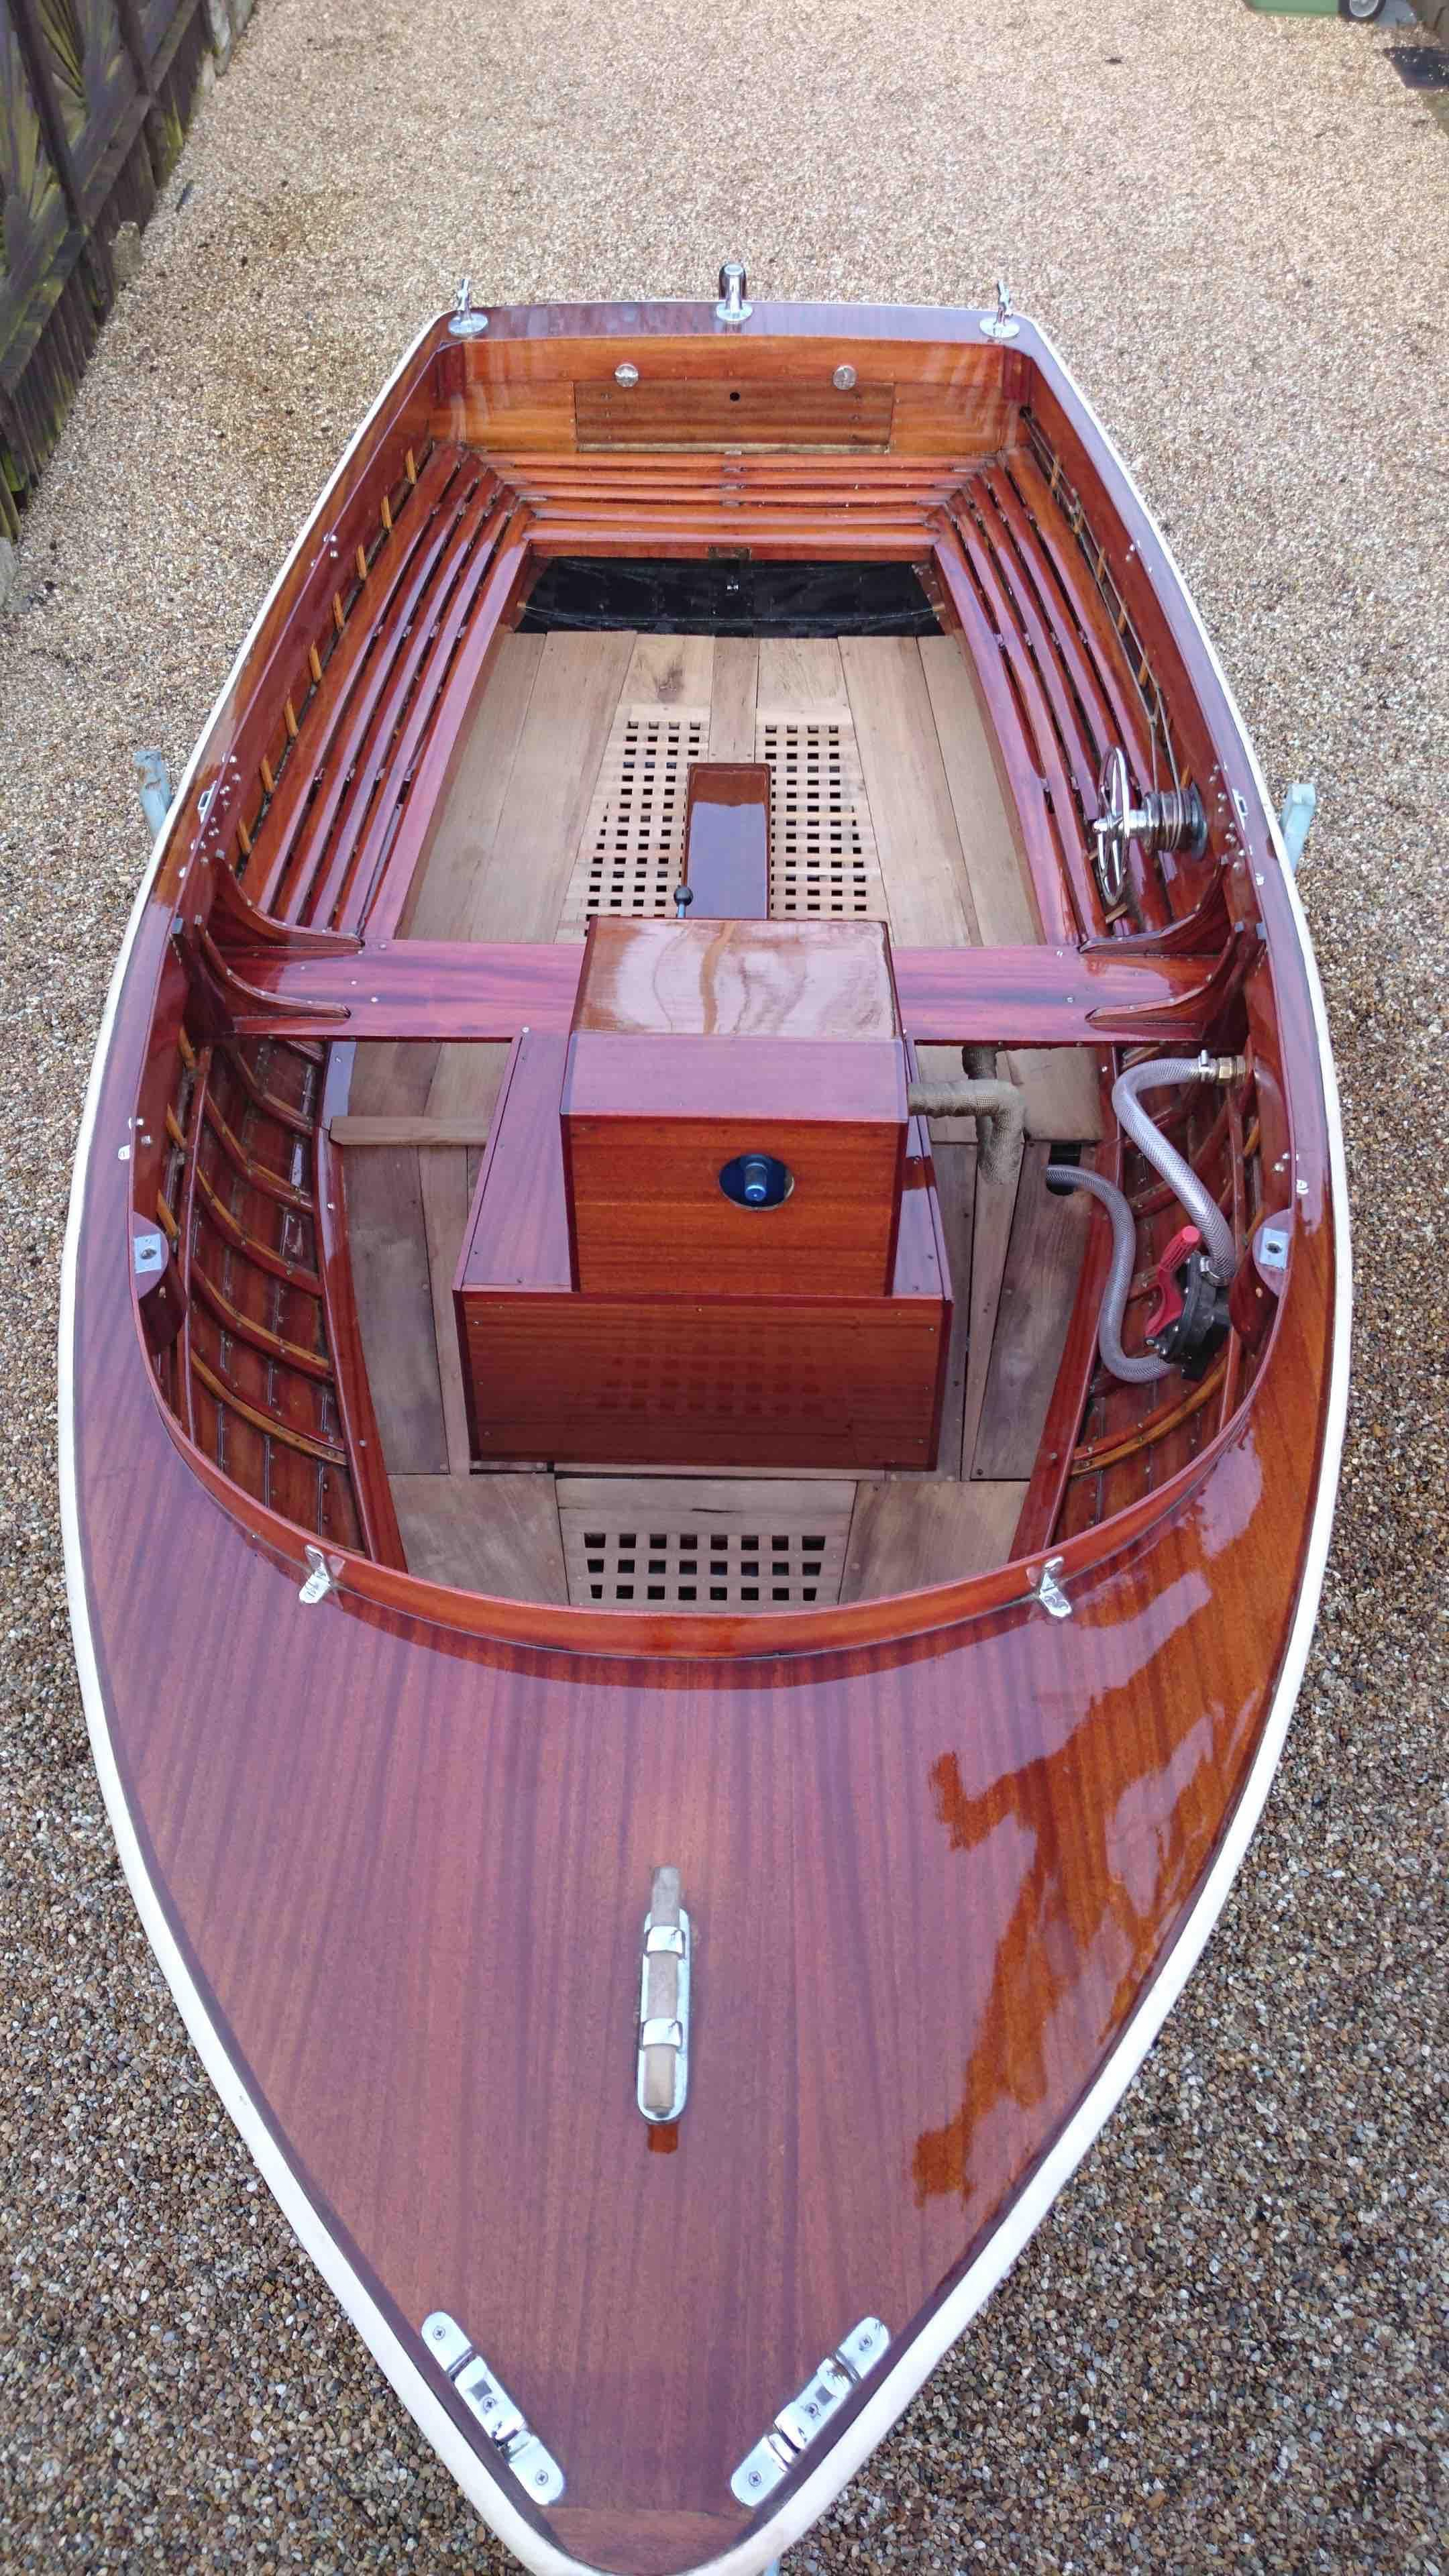 Pictures Of Clinker Brick And Lava Rock Houses: 1950 Clinker Mahogany Launch Power Boat For Sale